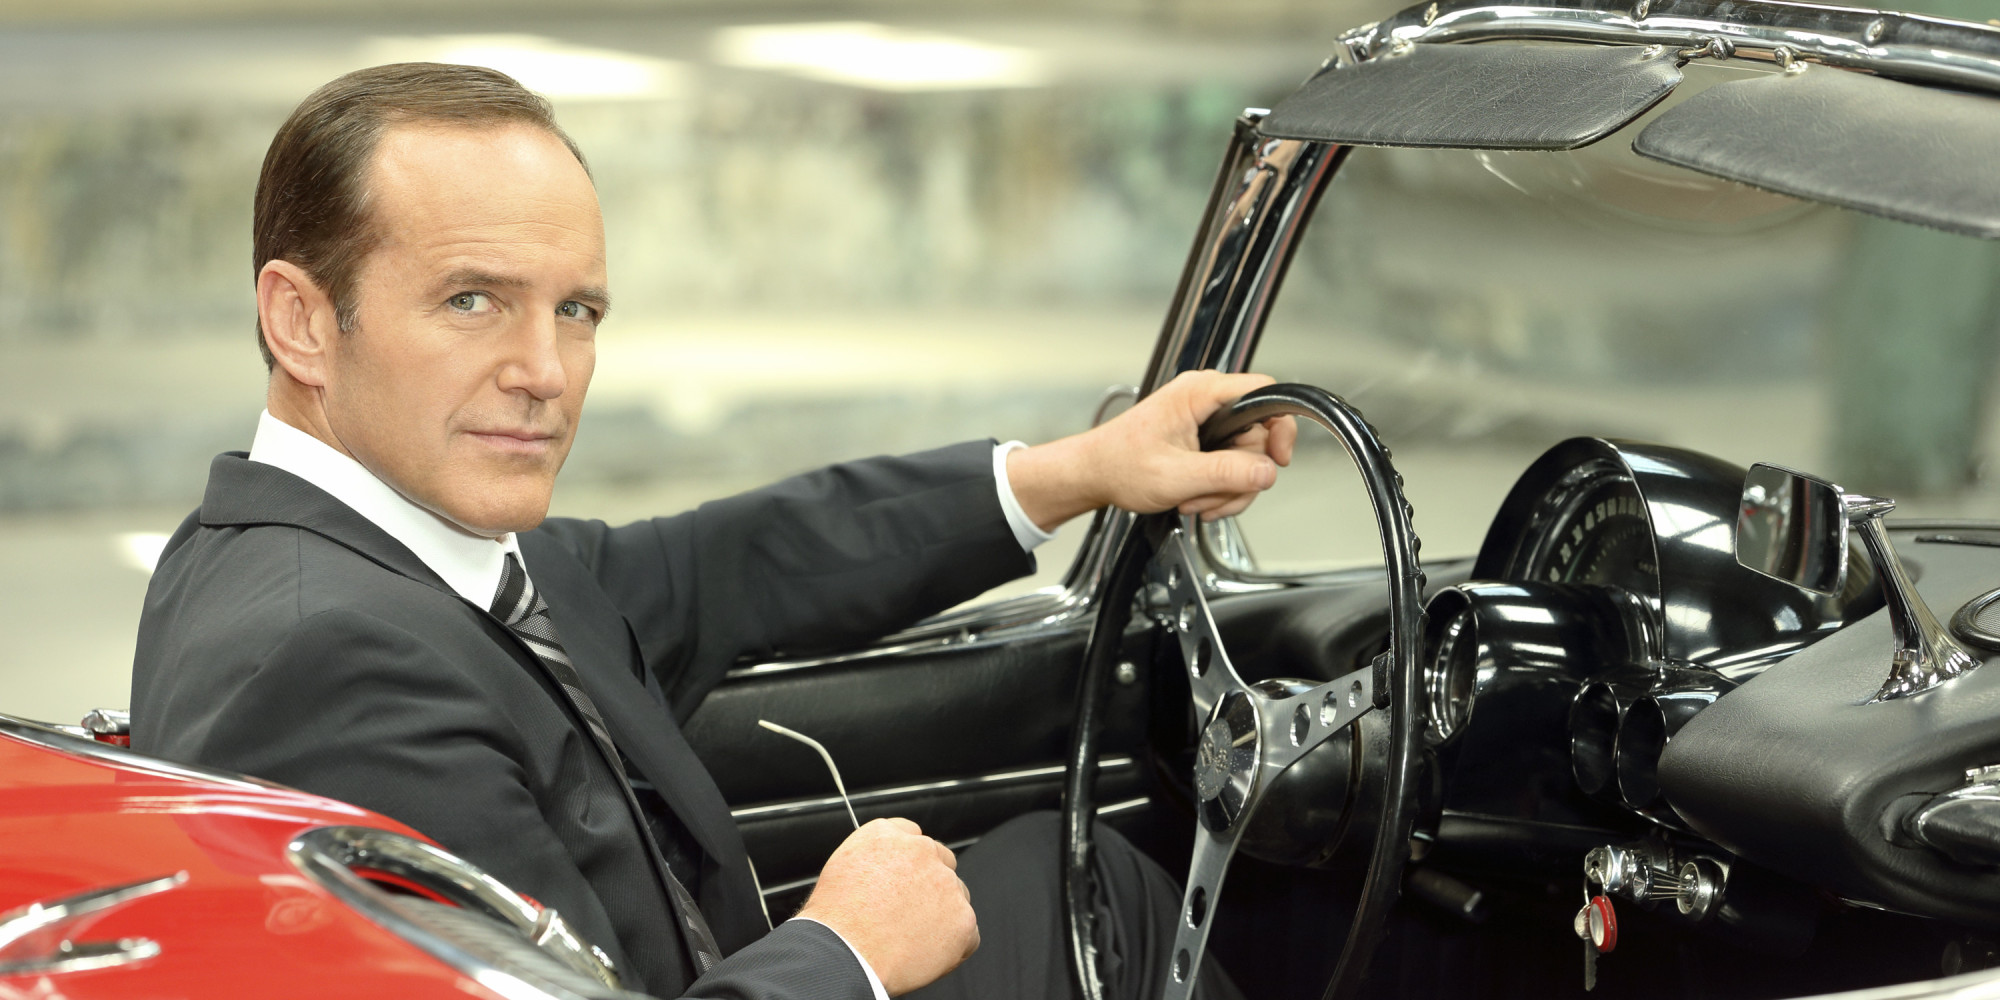 agent-phil-coulson-image-agent-phil-coulson-36087473-2000-1000-113727